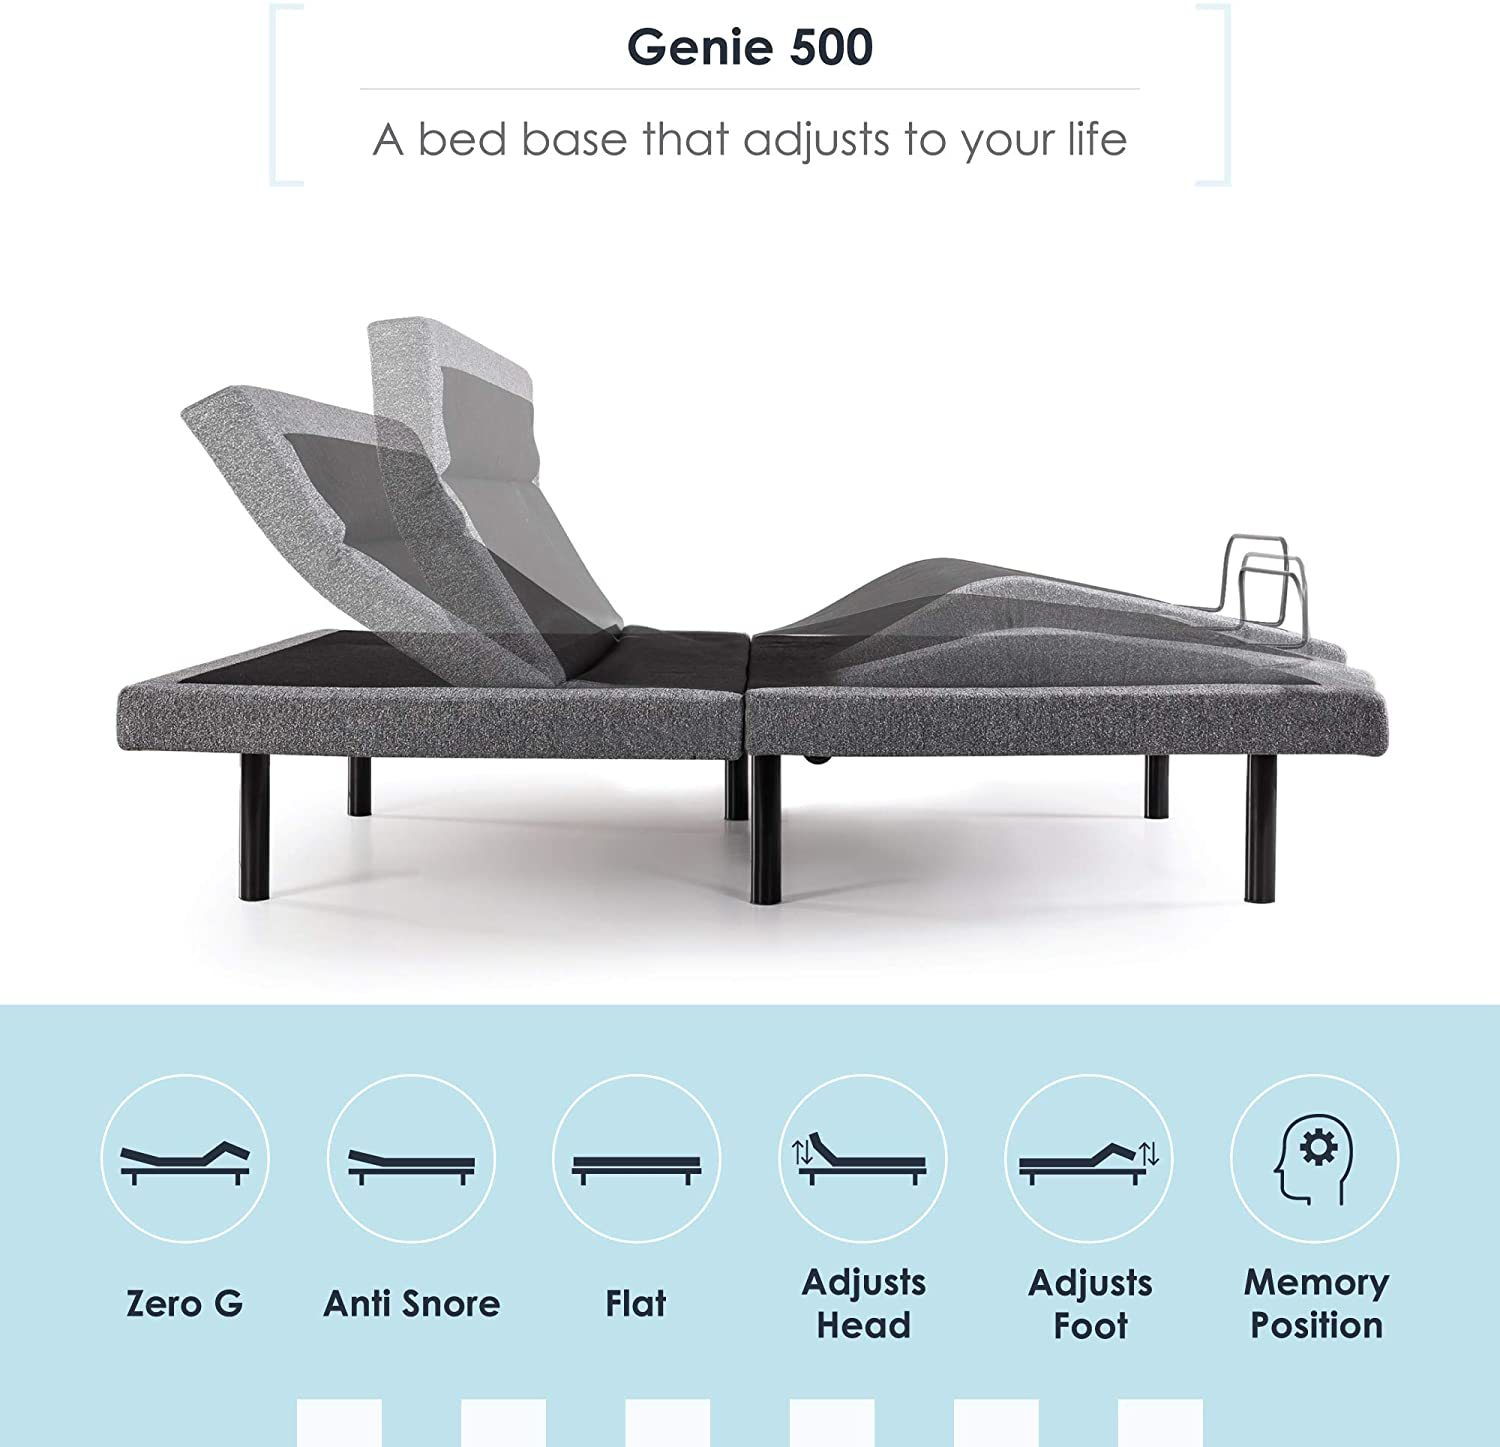 Mellow Genie 500 - Best Adjustable Beds for Back Pain